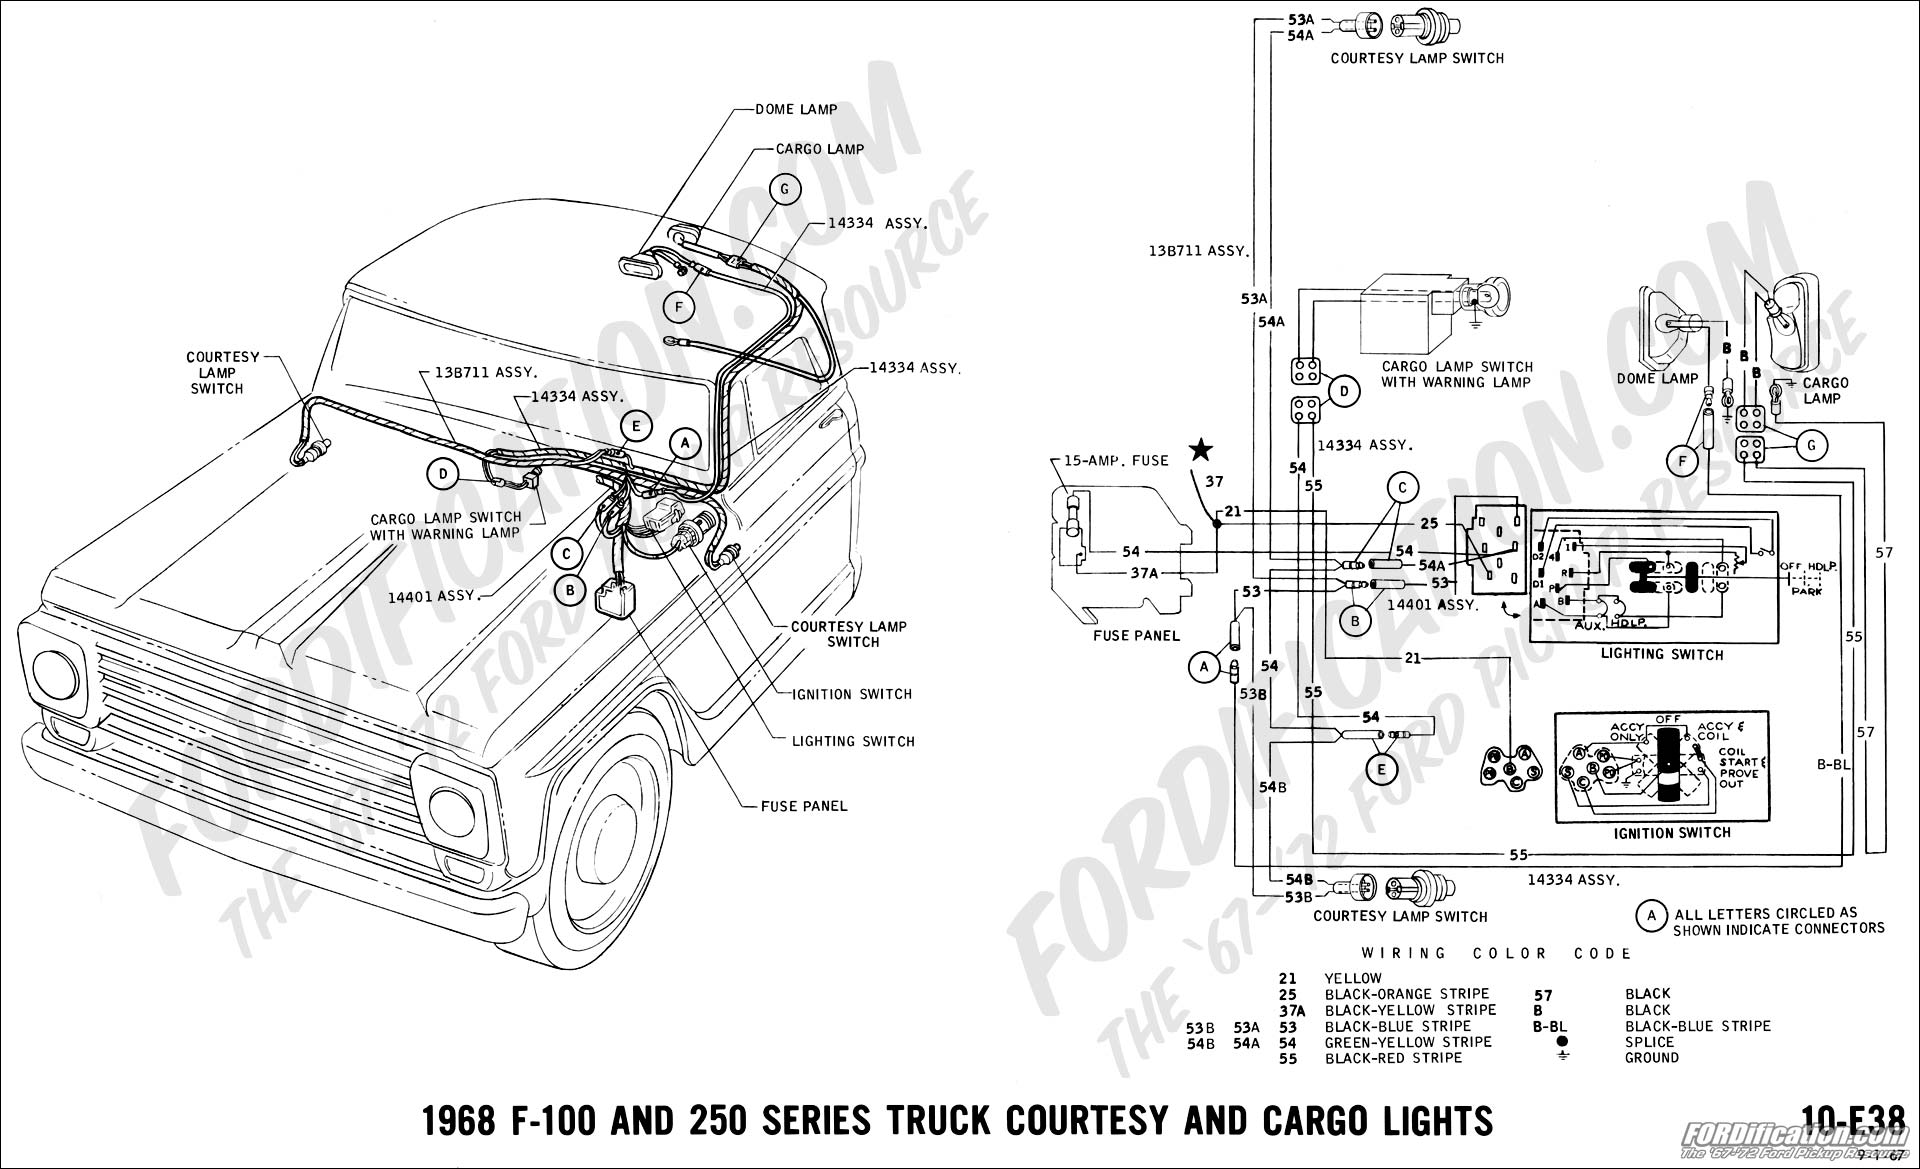 1968 Mustang Wiring Diagram Vacuum Schematics also  together with 65 Chevy Truck Wiring Diagram also 1966 Mustang Wiring Diagrams besides 1966 Volkswagen Beetle Headlight Switch Wiring. on 1966 ford headlight switch wiring diagram